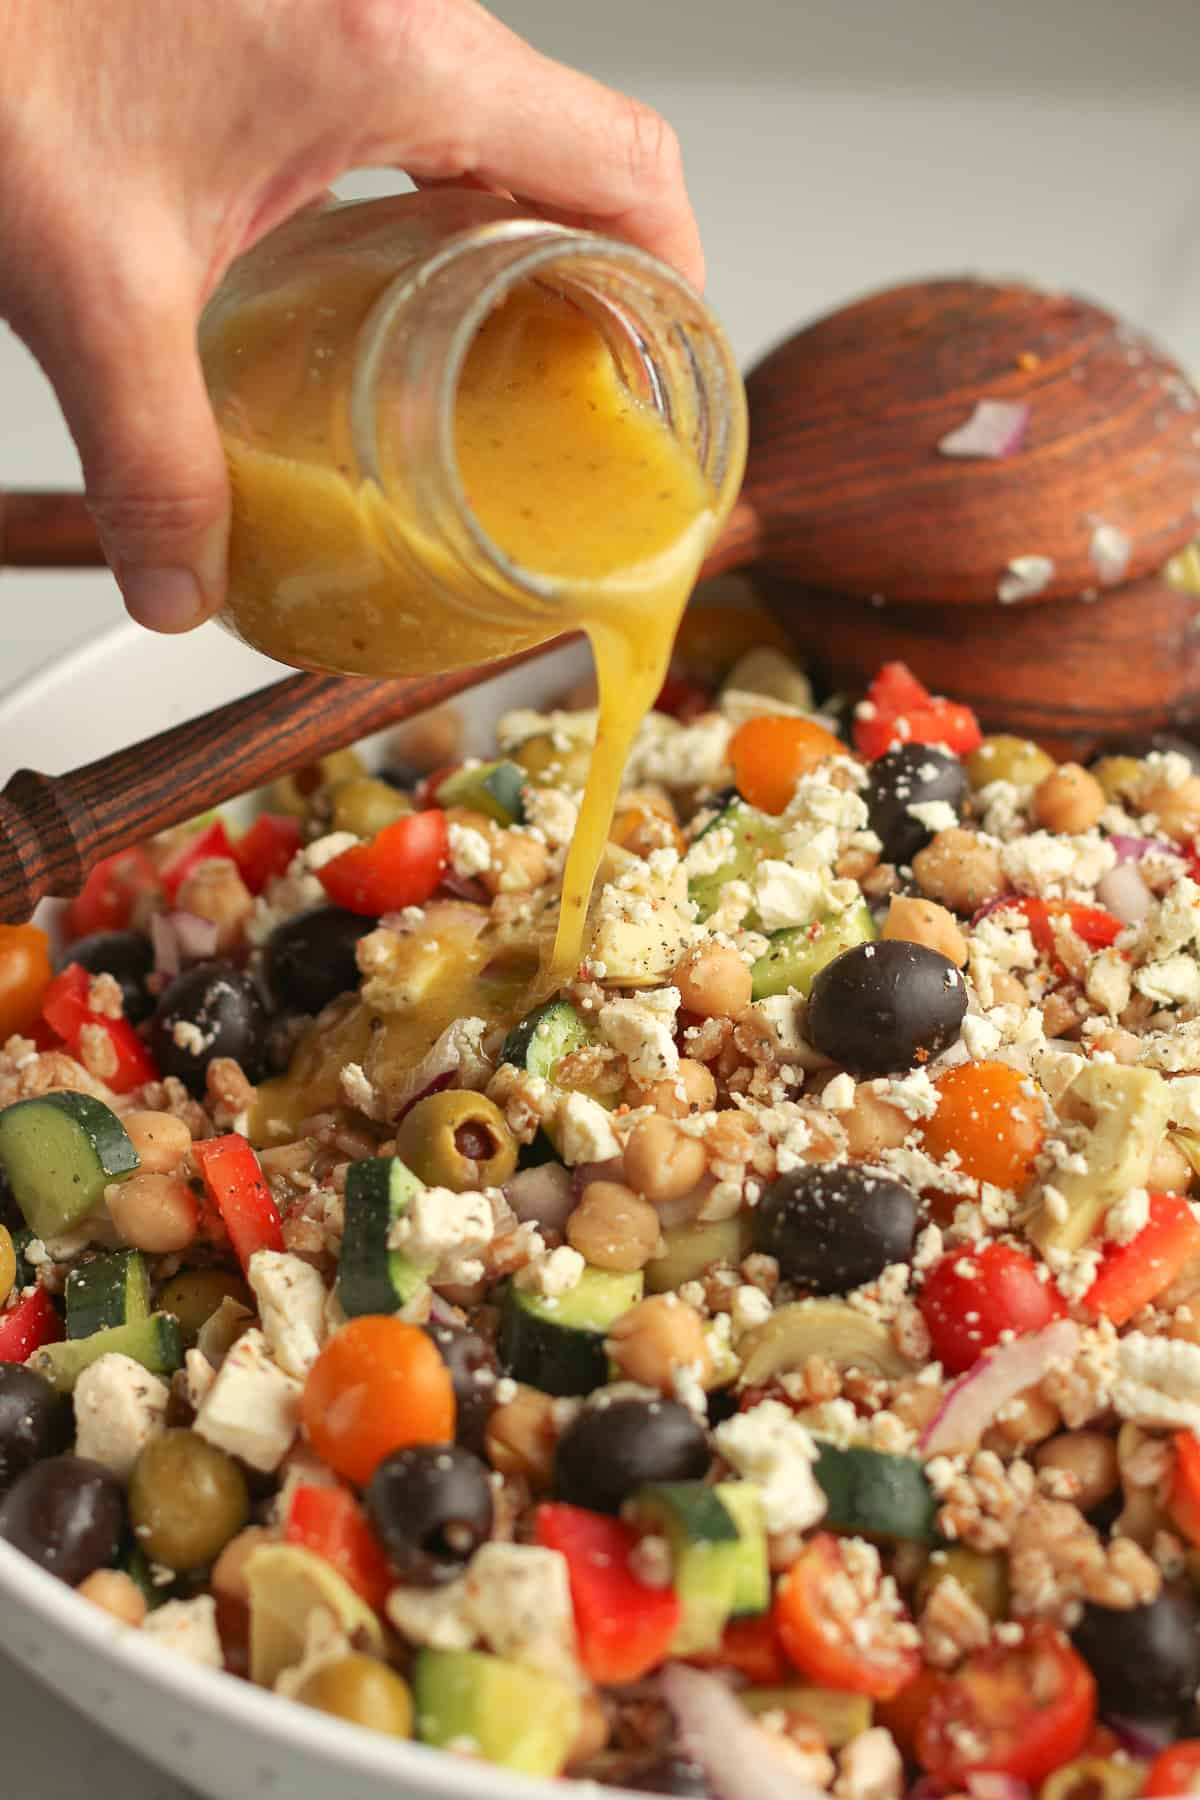 A hand drizzling some Greek Salad dressing on the salad.